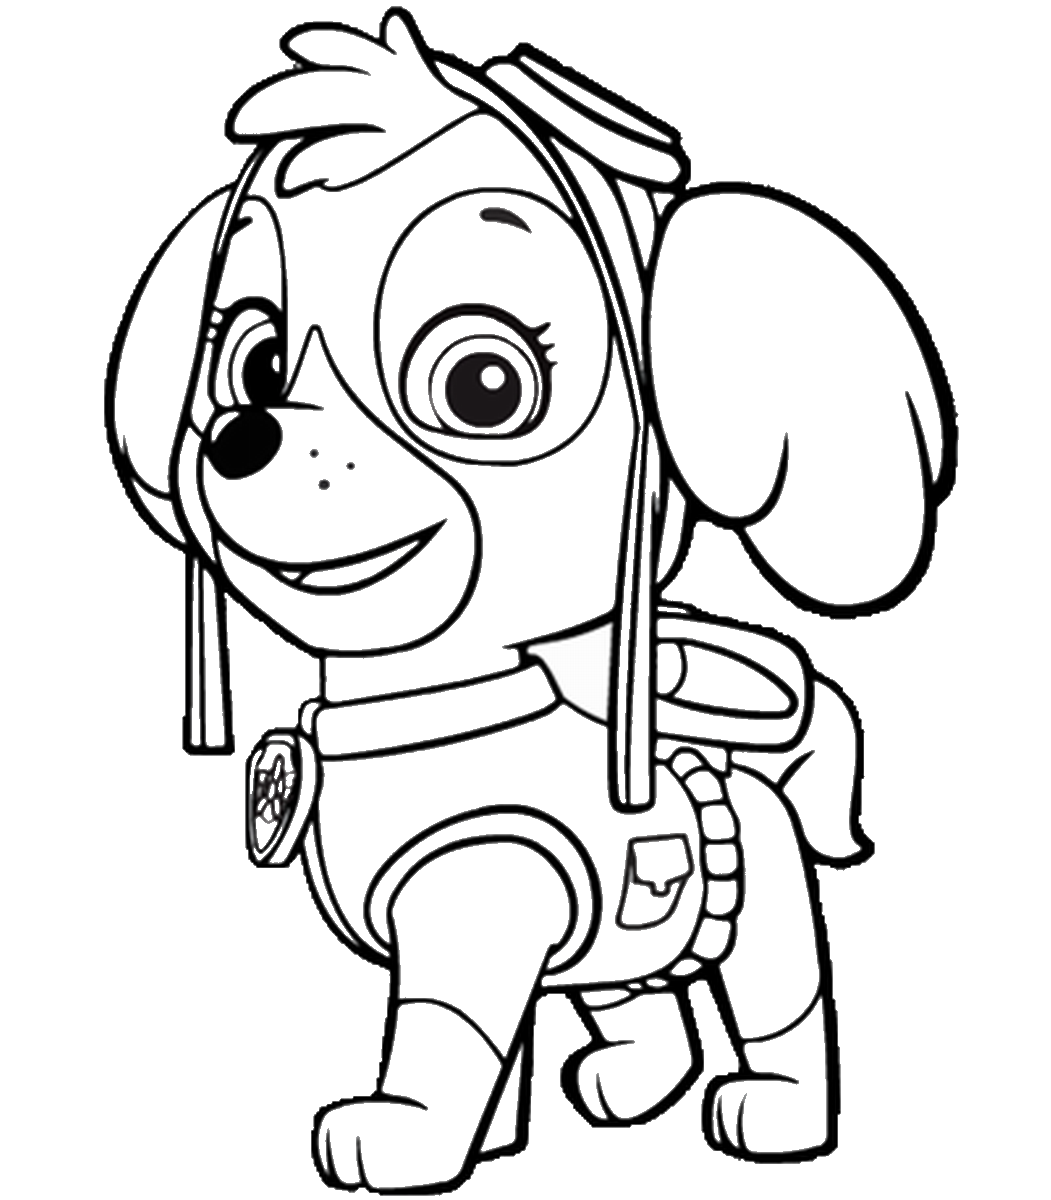 Paw Patrol Drawing at GetDrawings com | Free for personal